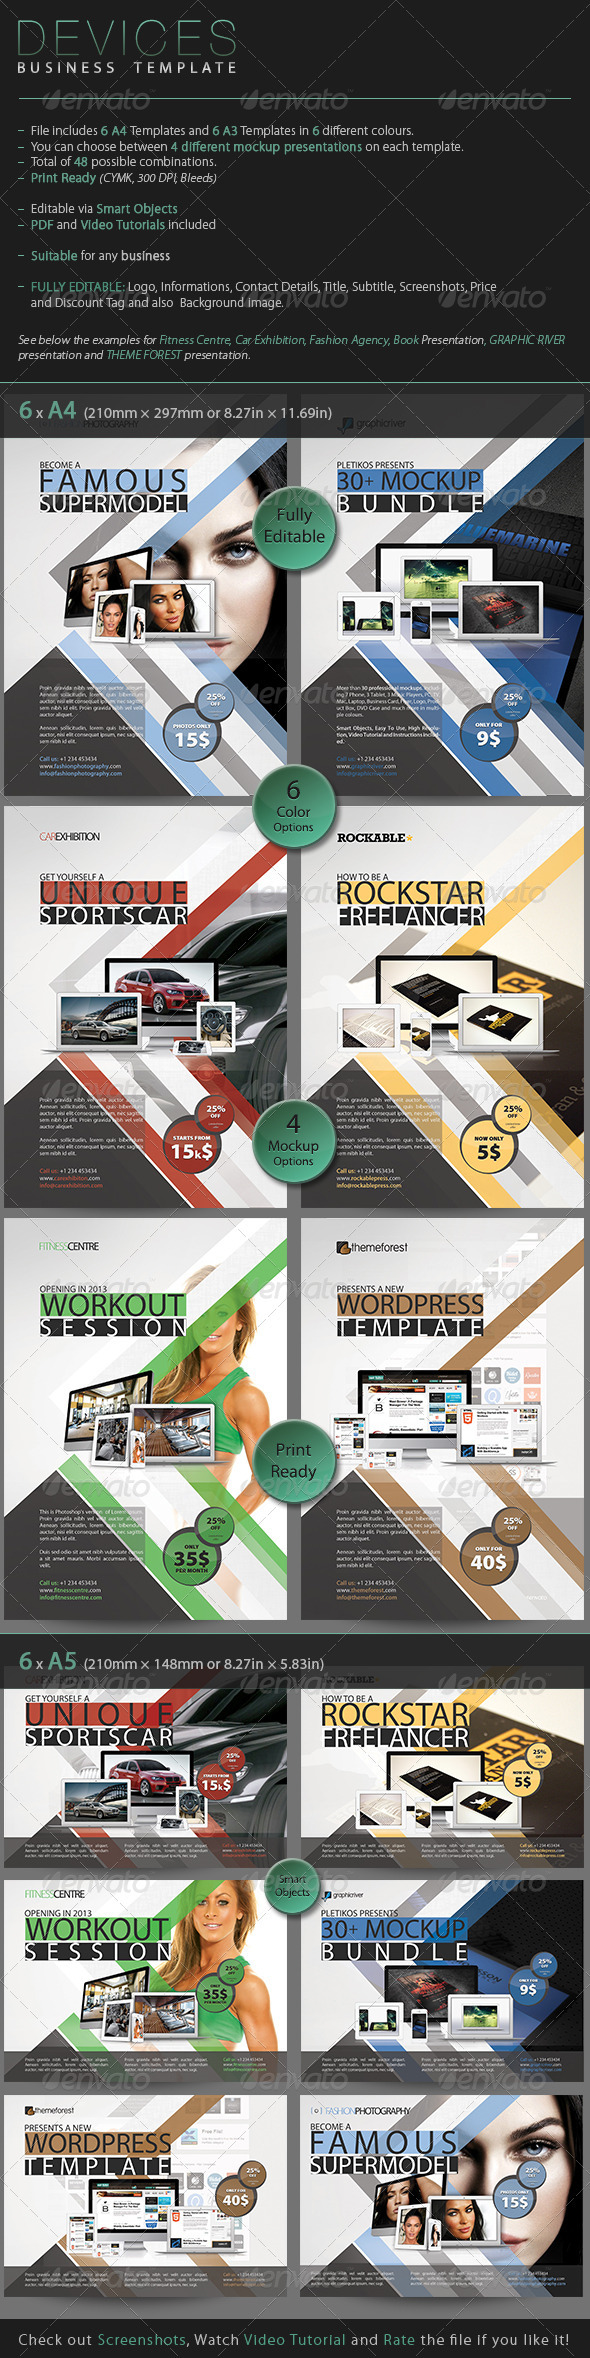 Devices - Business Template - Corporate Flyers